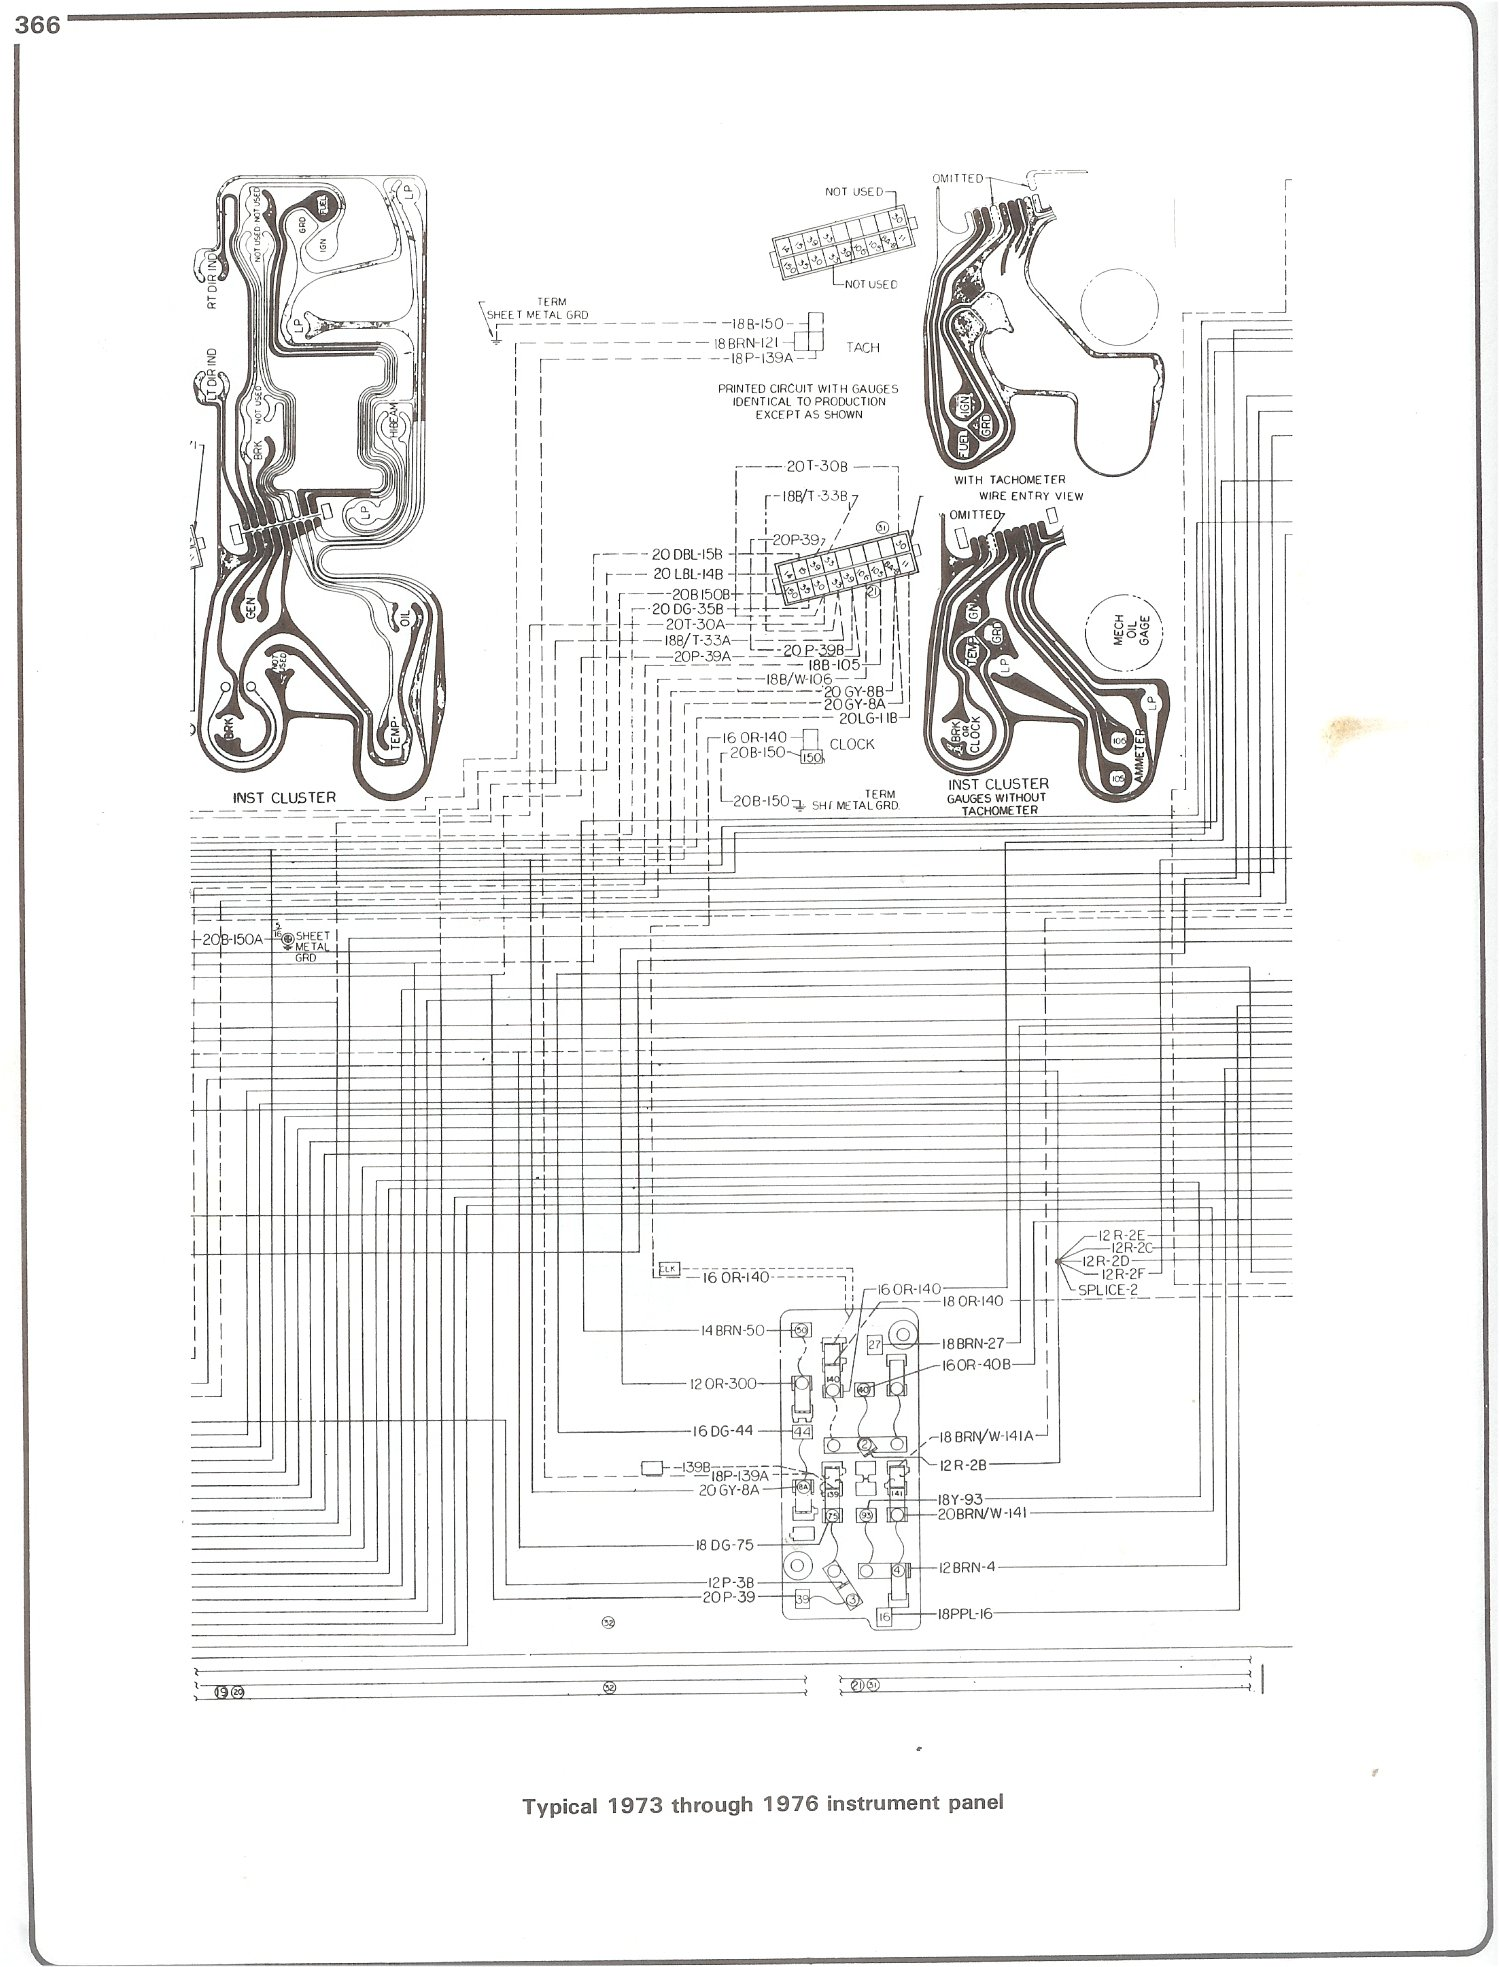 73 76_instrument complete 73 87 wiring diagrams wiring diagram for 1983 chevy pickup at mifinder.co